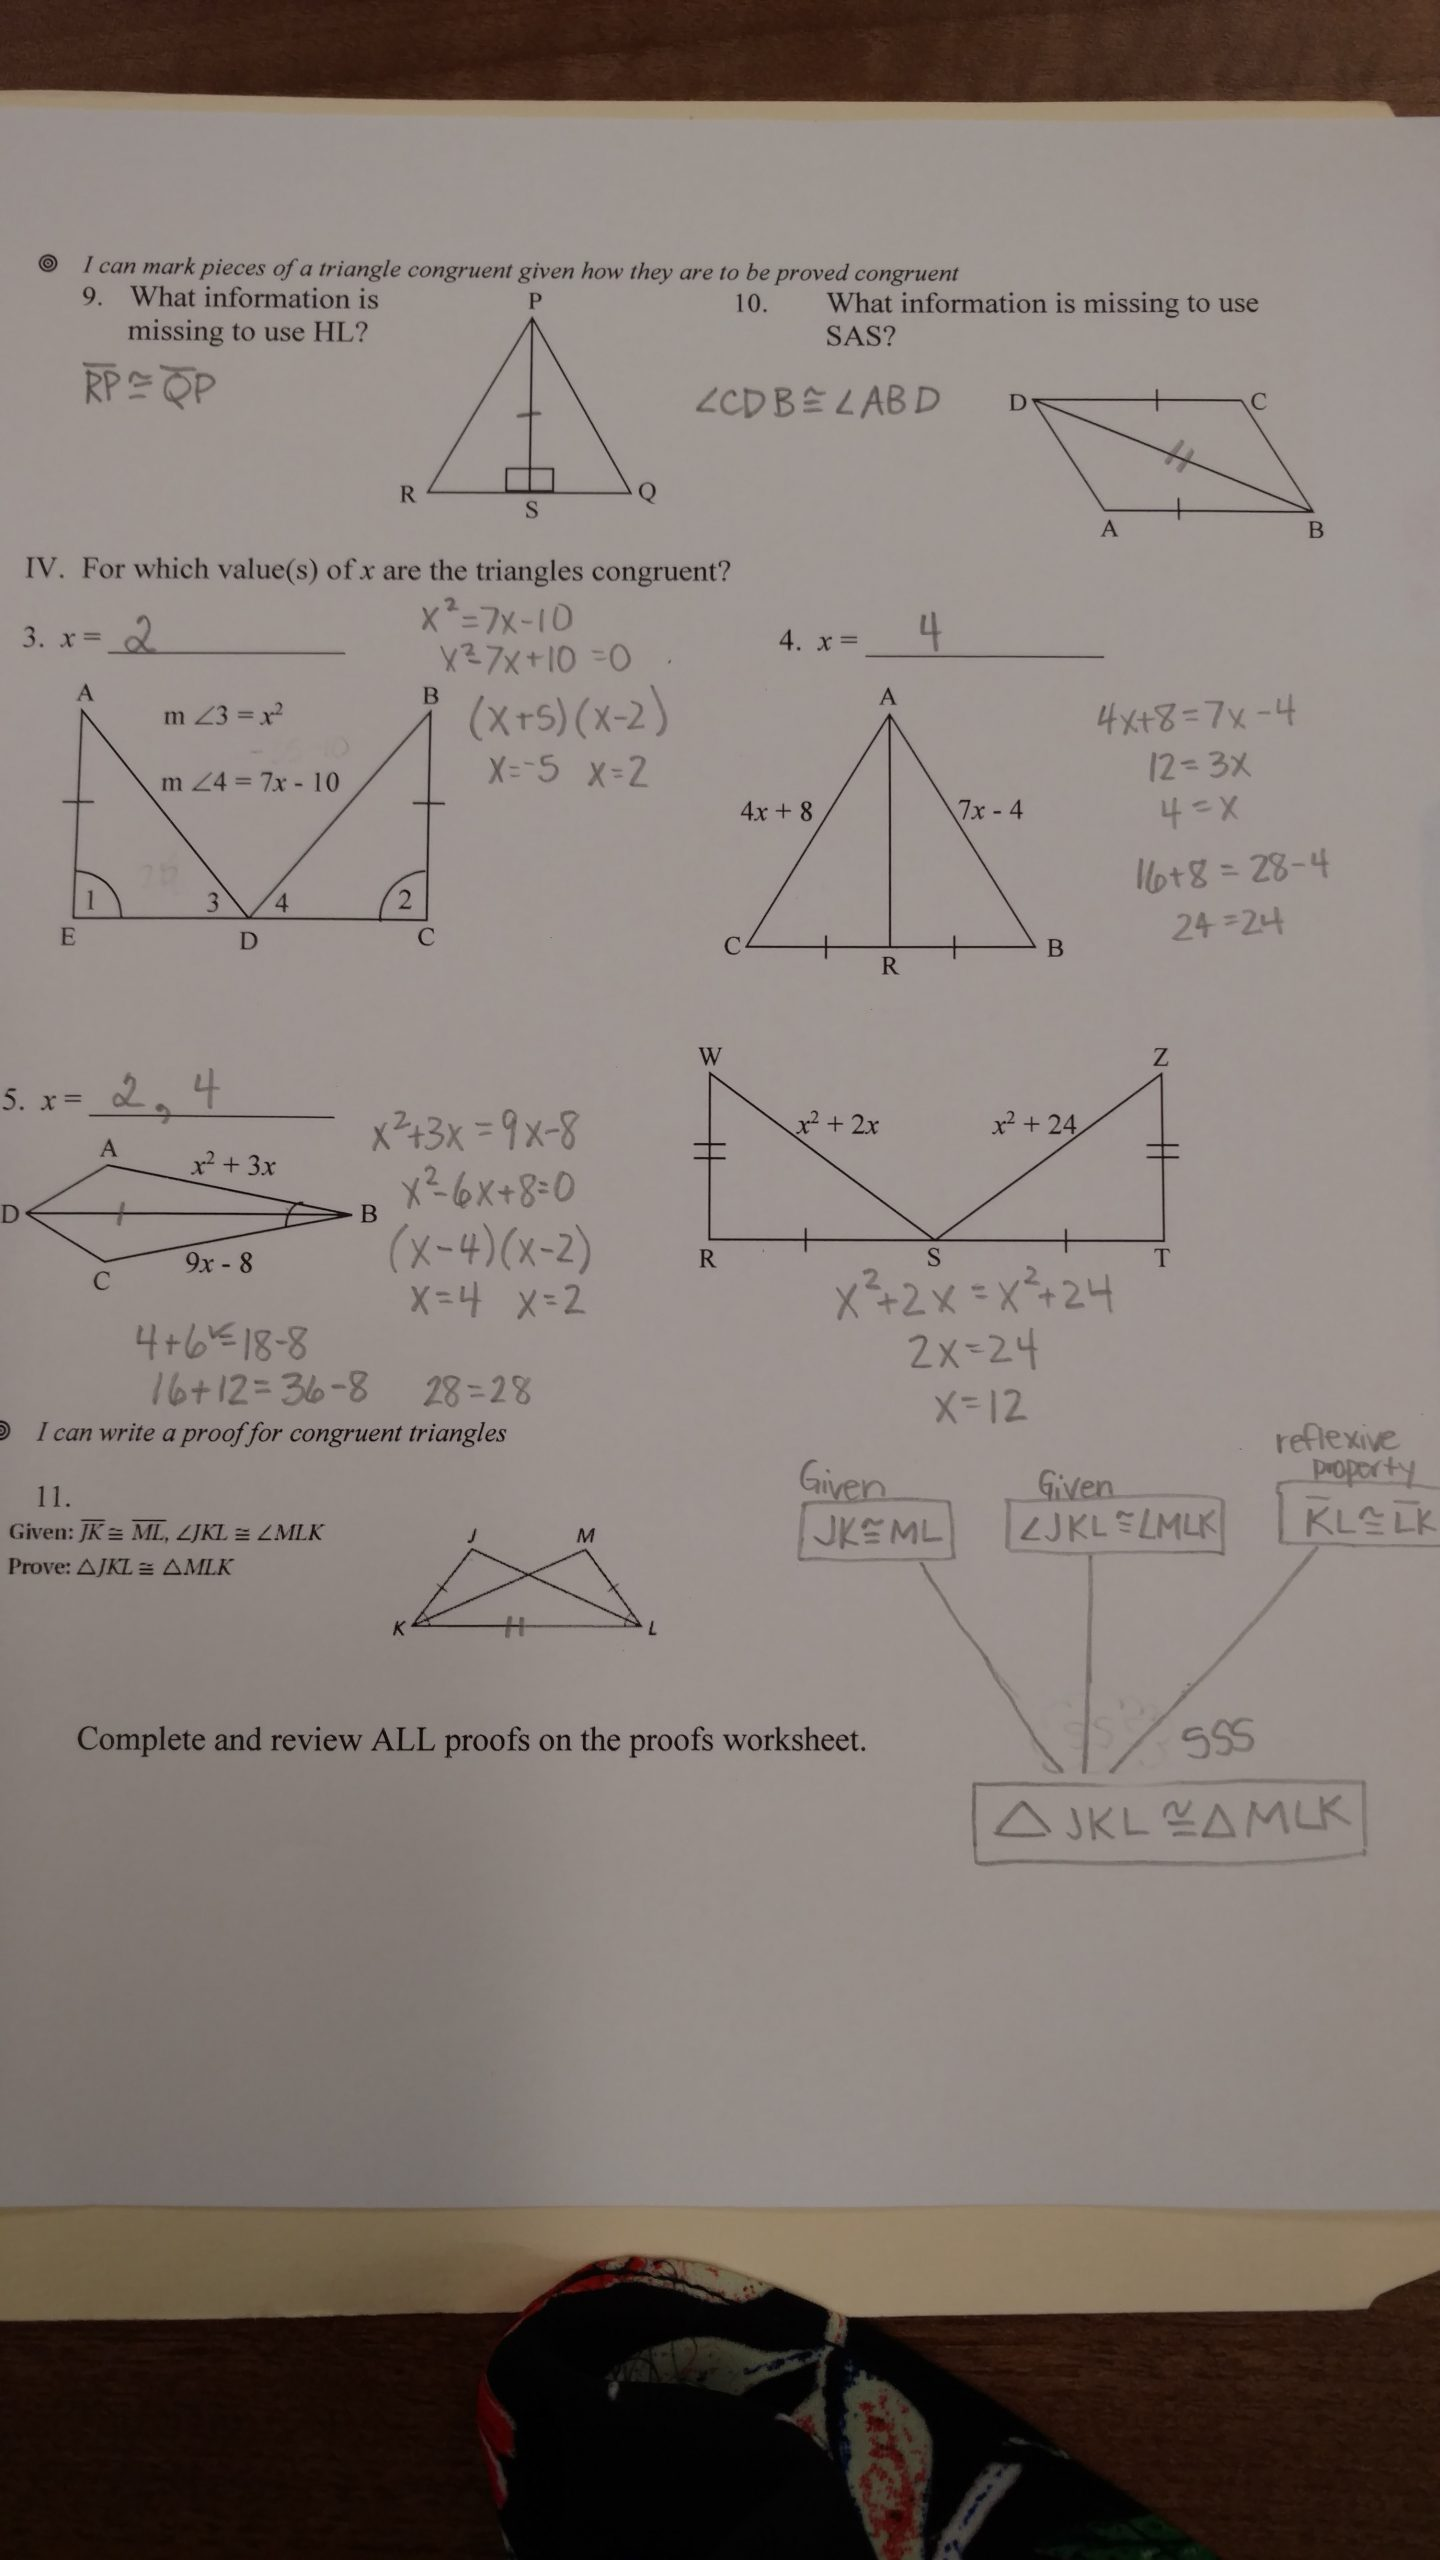 Proving Triangles Congruent Worksheet Answers Triangle Congruence Dr Mccormick S Math Website